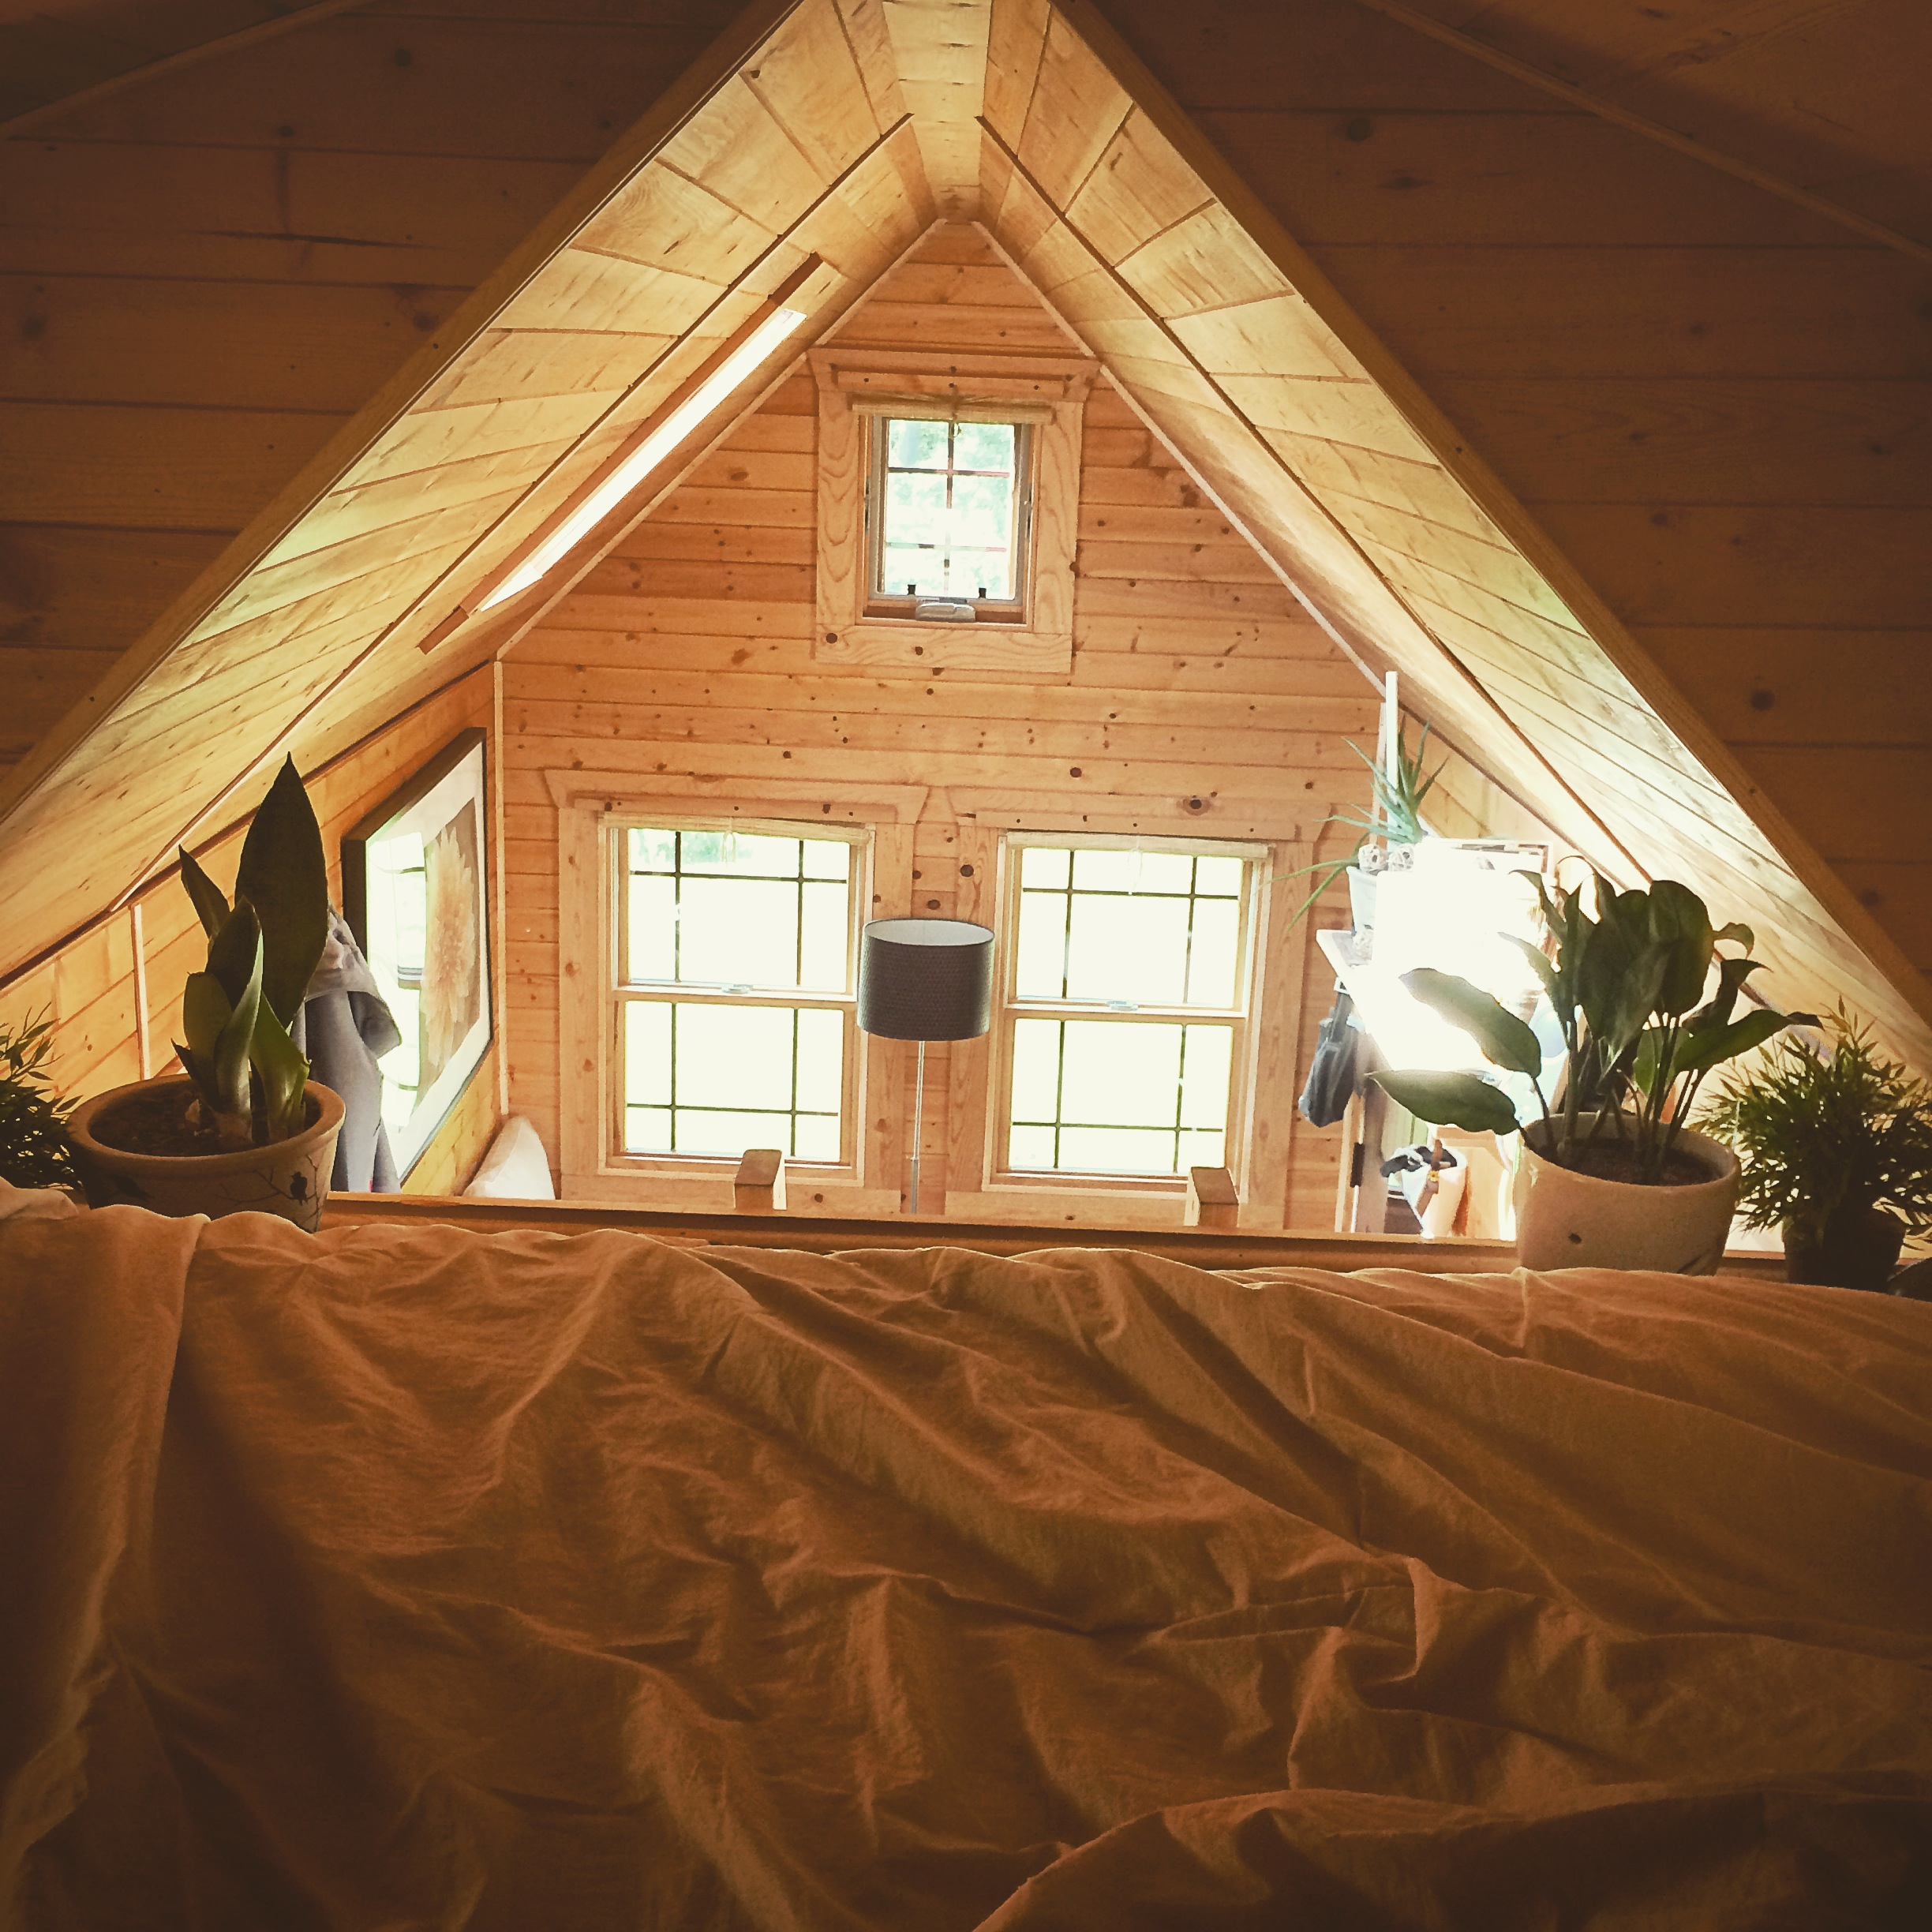 I will never get over how cozy my loft is! Even if it's 90 degrees up there... I will still take a nap! I'v considered painting my walls white at one point, but I'm happy with they way they are right now. The warm glow just punches the cozy up another level!